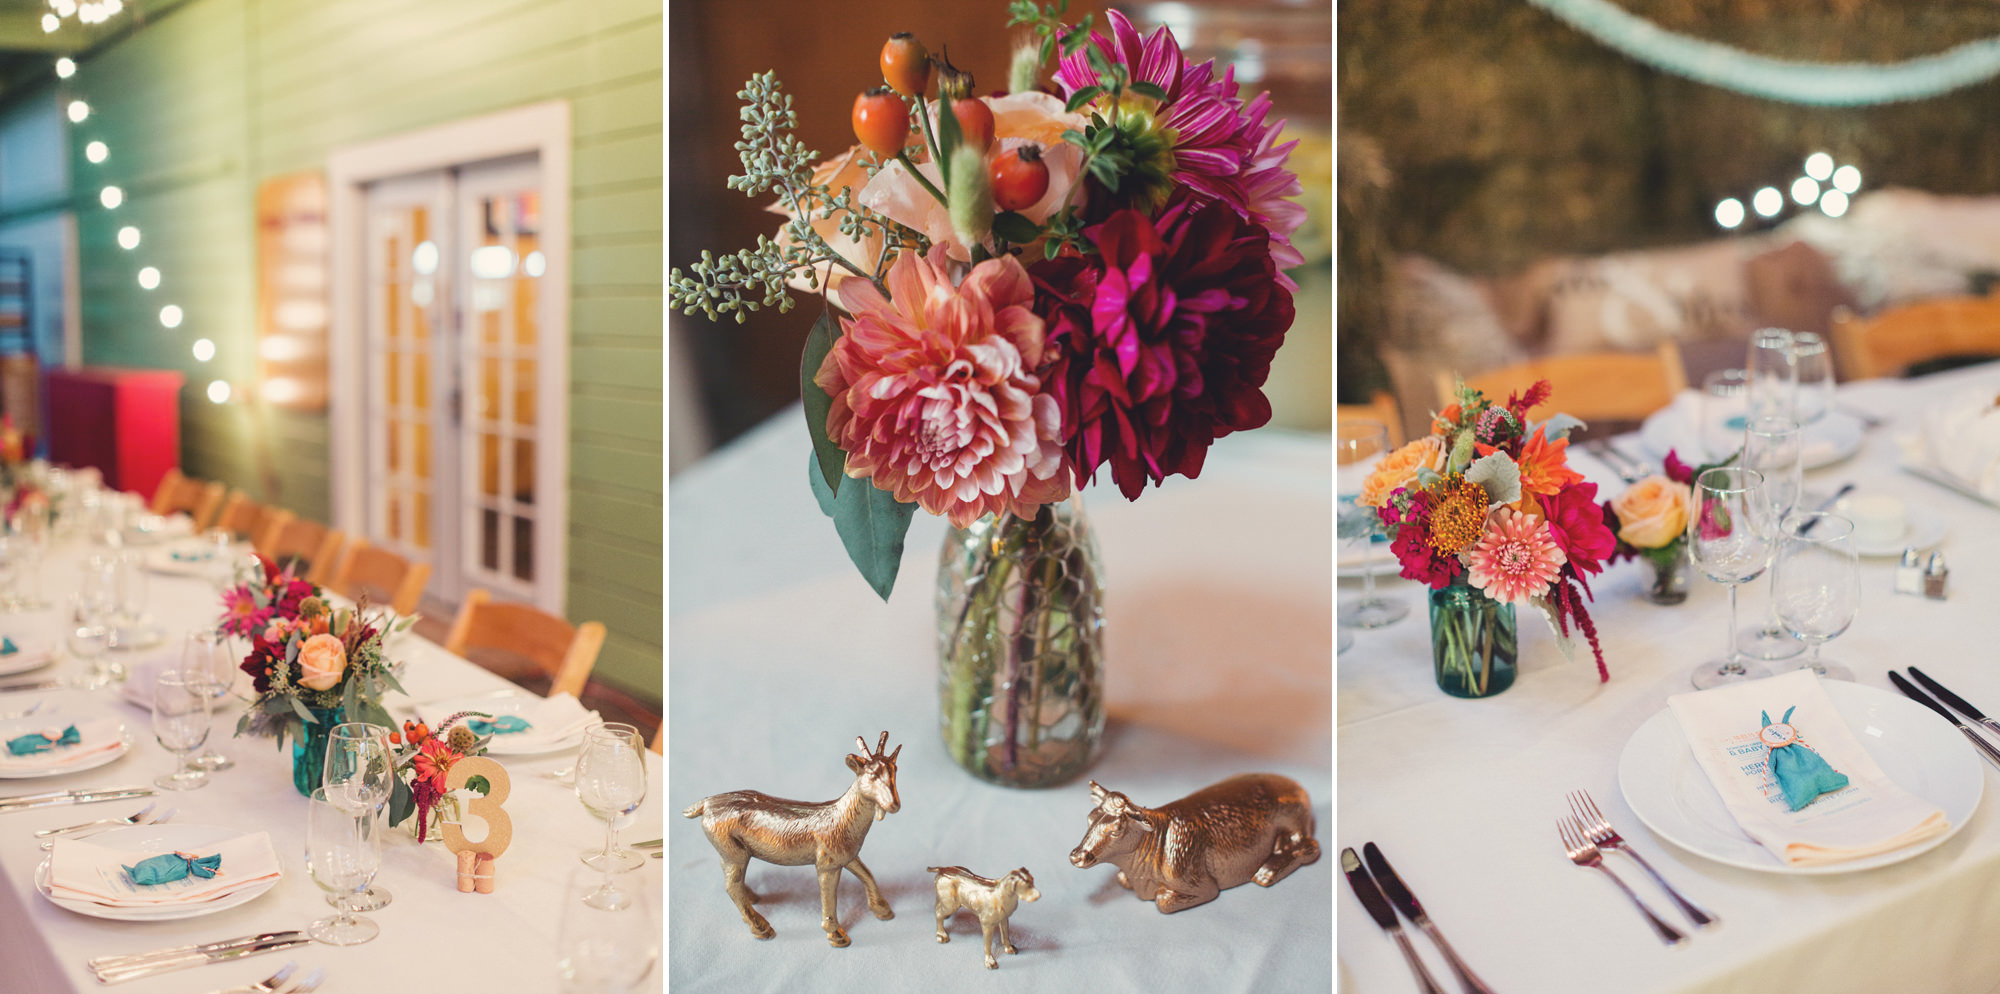 Toby's Feed Barn Wedding ©Anne-Claire Brun 120